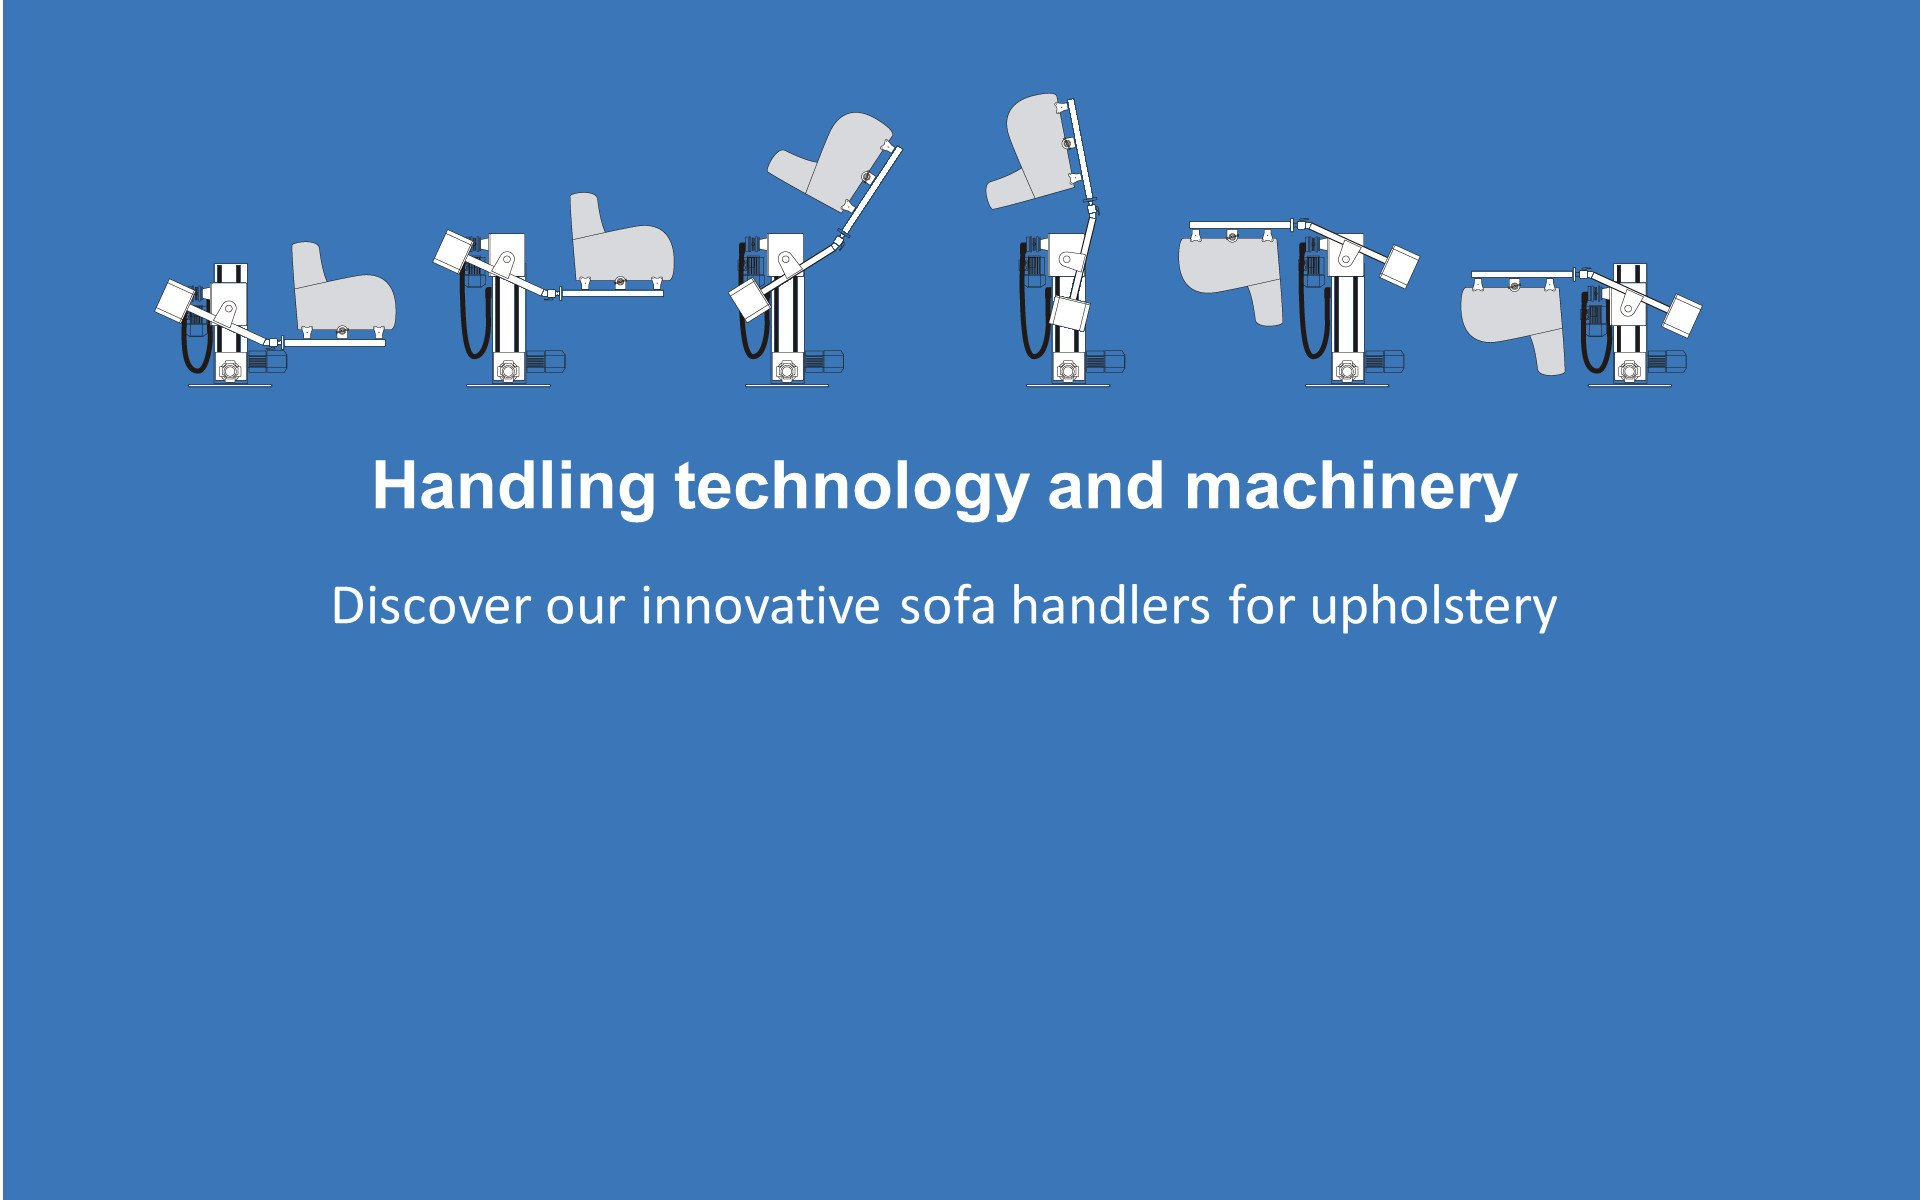 Handling technology and machinery